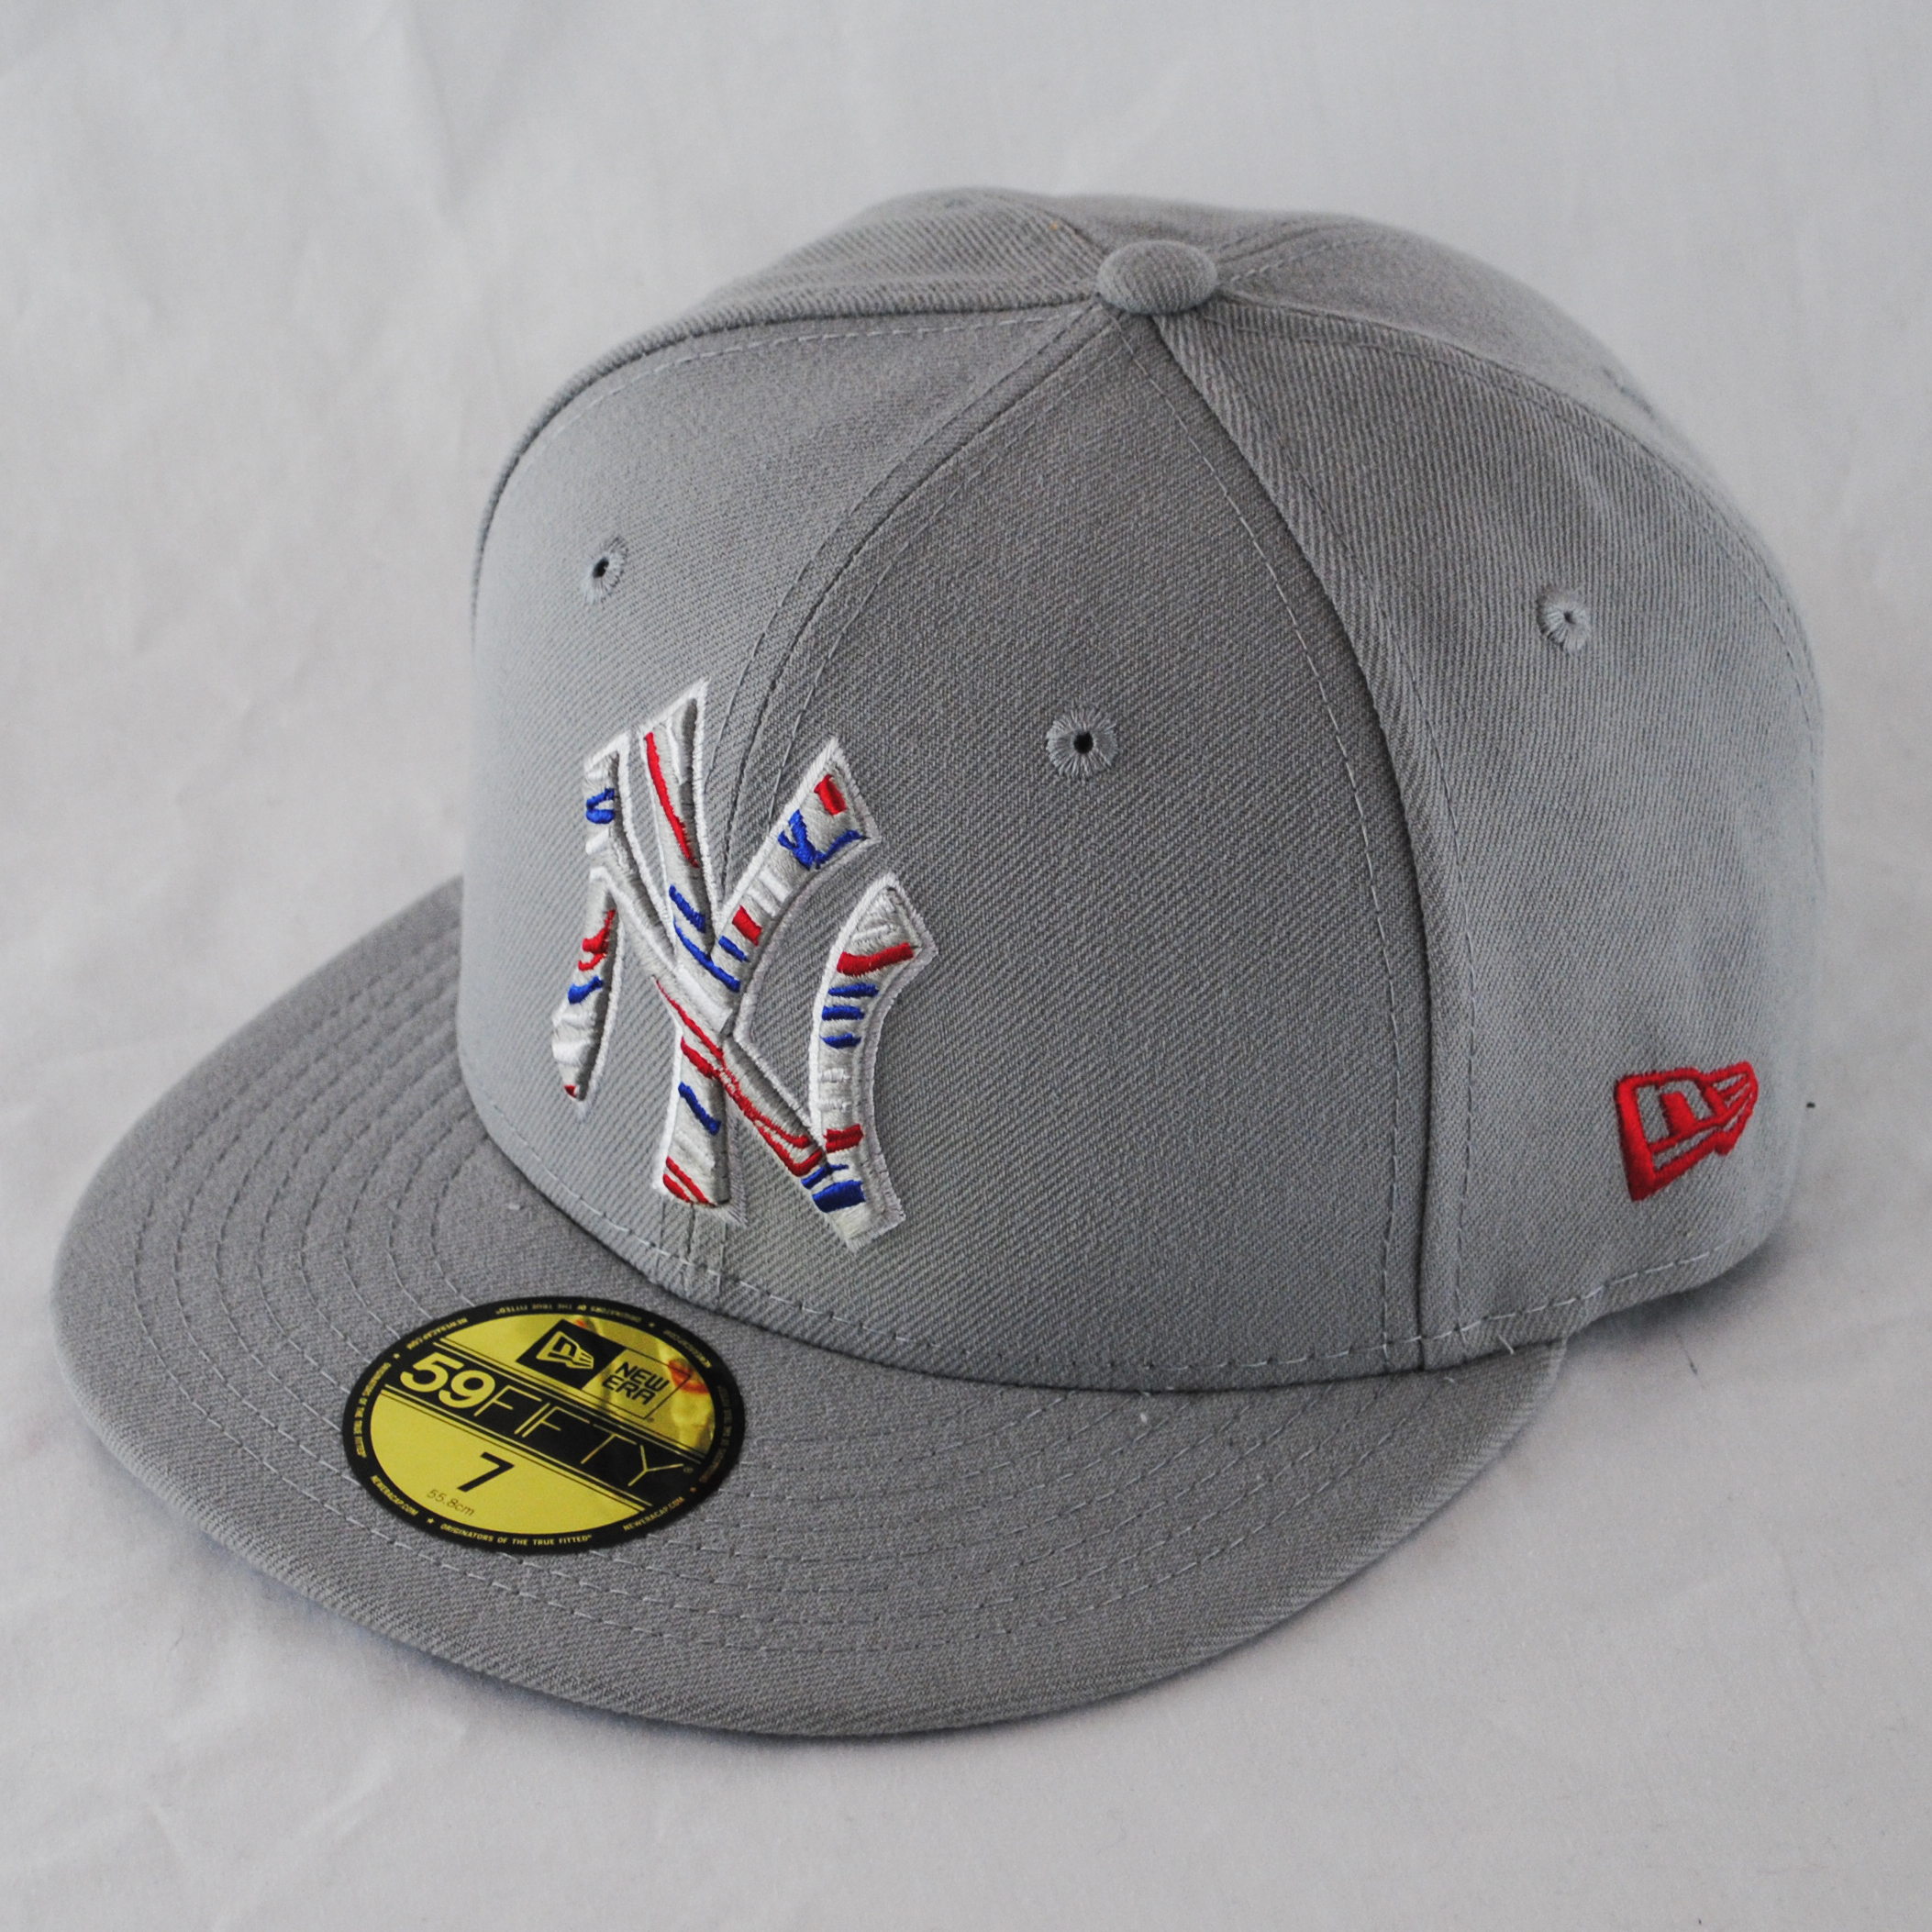 what is new era hats